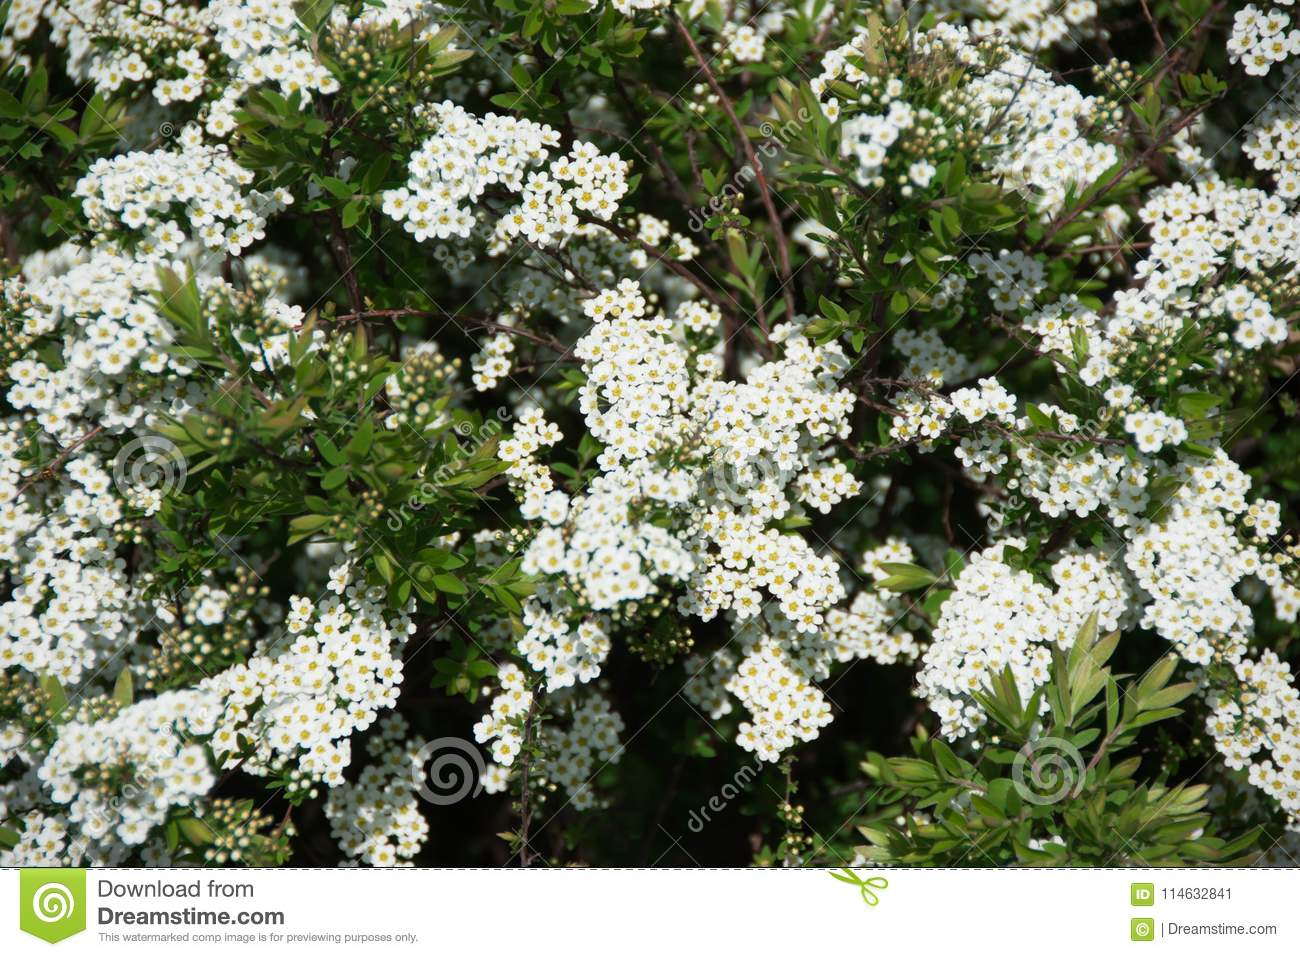 Green bush with white flowers on a spring day stock image image of download green bush with white flowers on a spring day stock image image of nature mightylinksfo